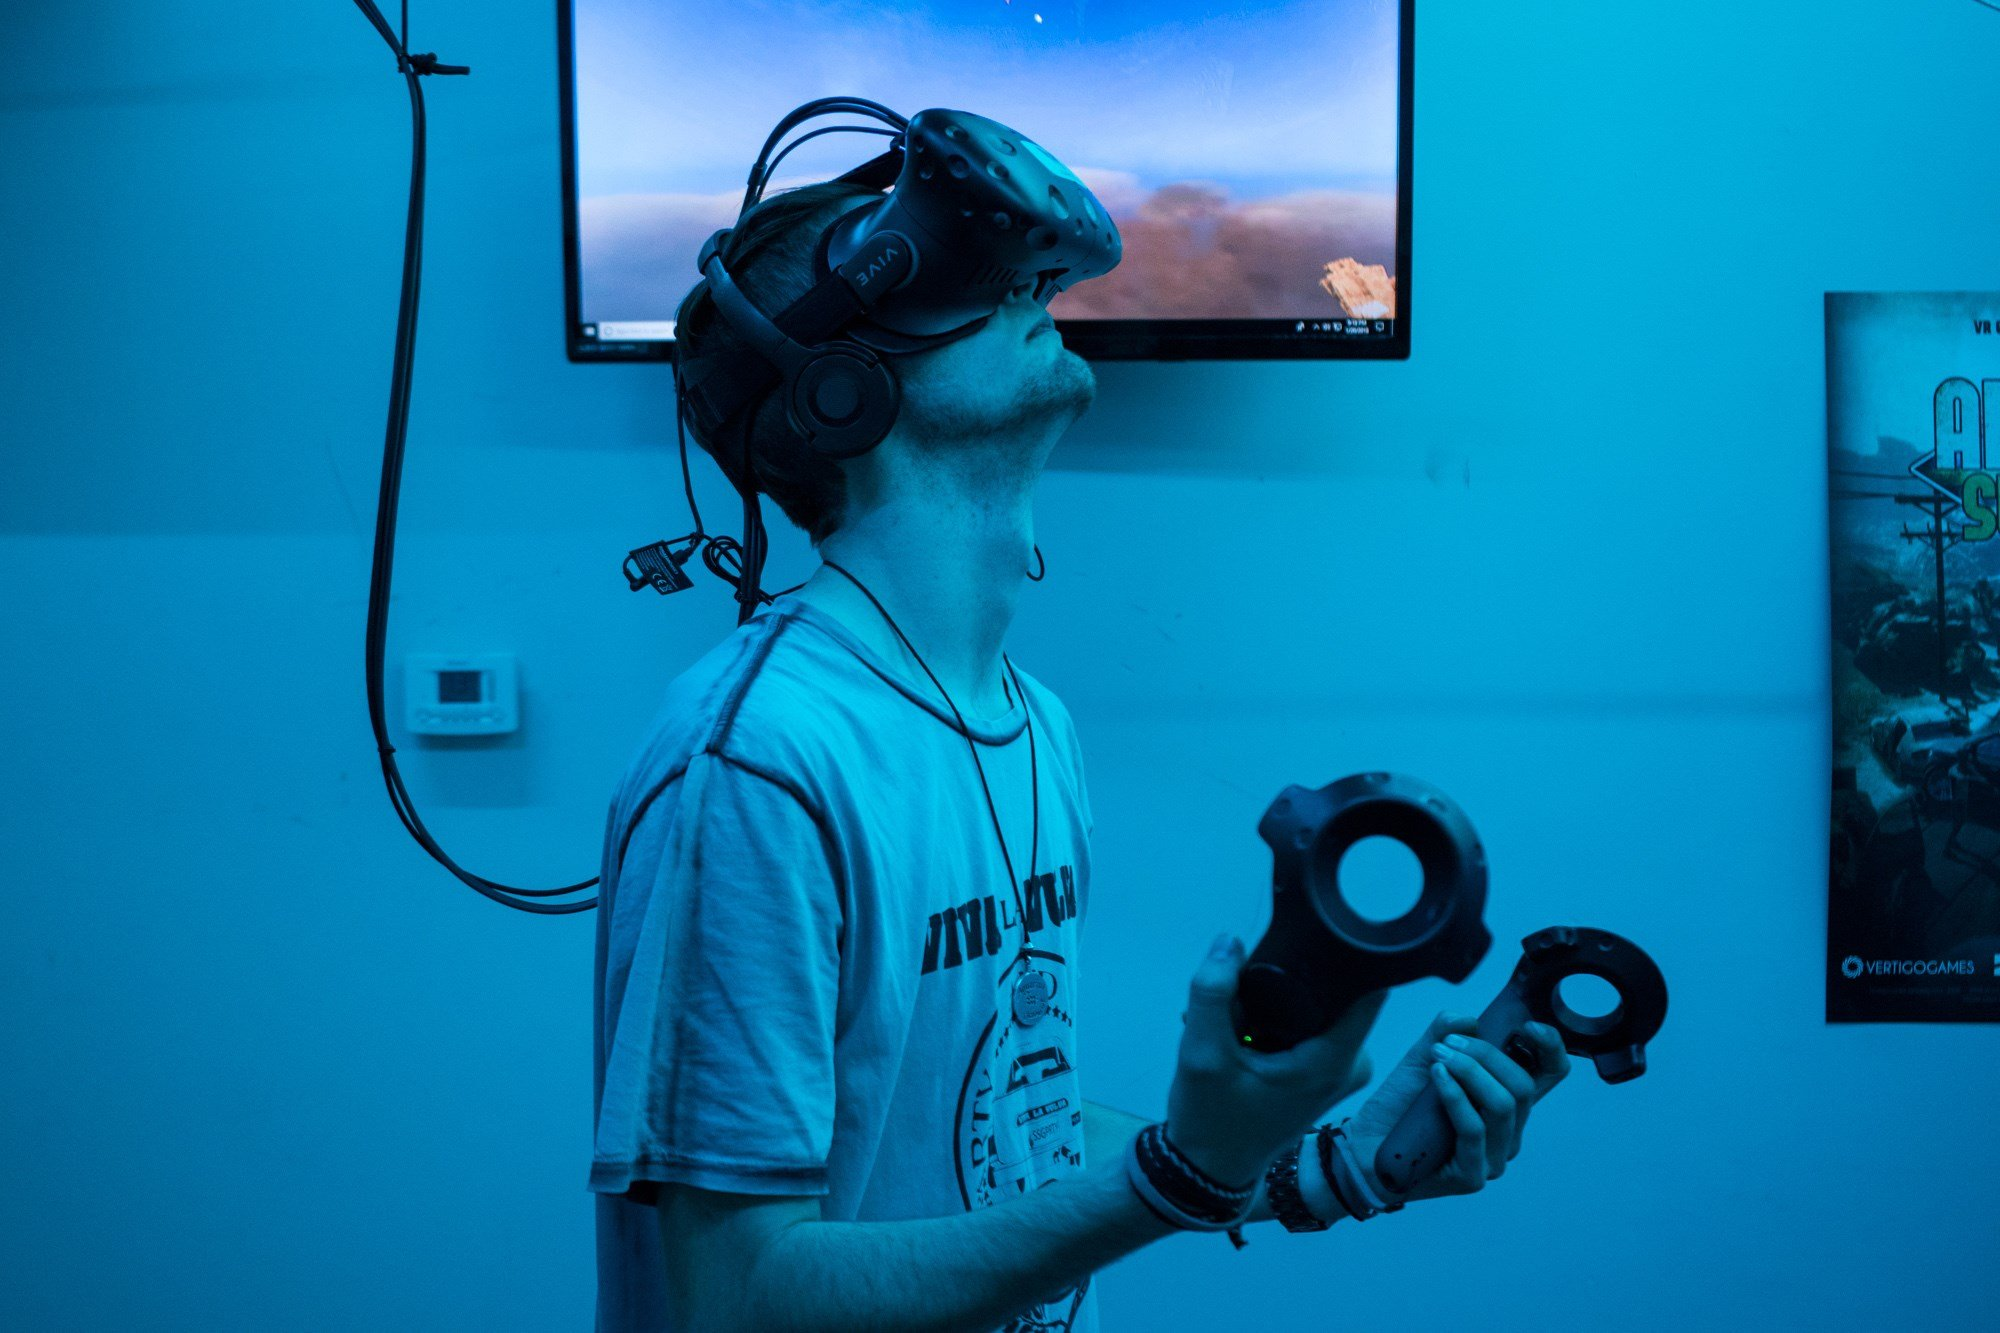 """Jack Fortin, who played """"Skyfront"""" at a VR arcade, had planned to play for only 10 minutes but liked it so much that he came back later that night for another hour. (Source: Daria Kadovik/Cronkite News)"""